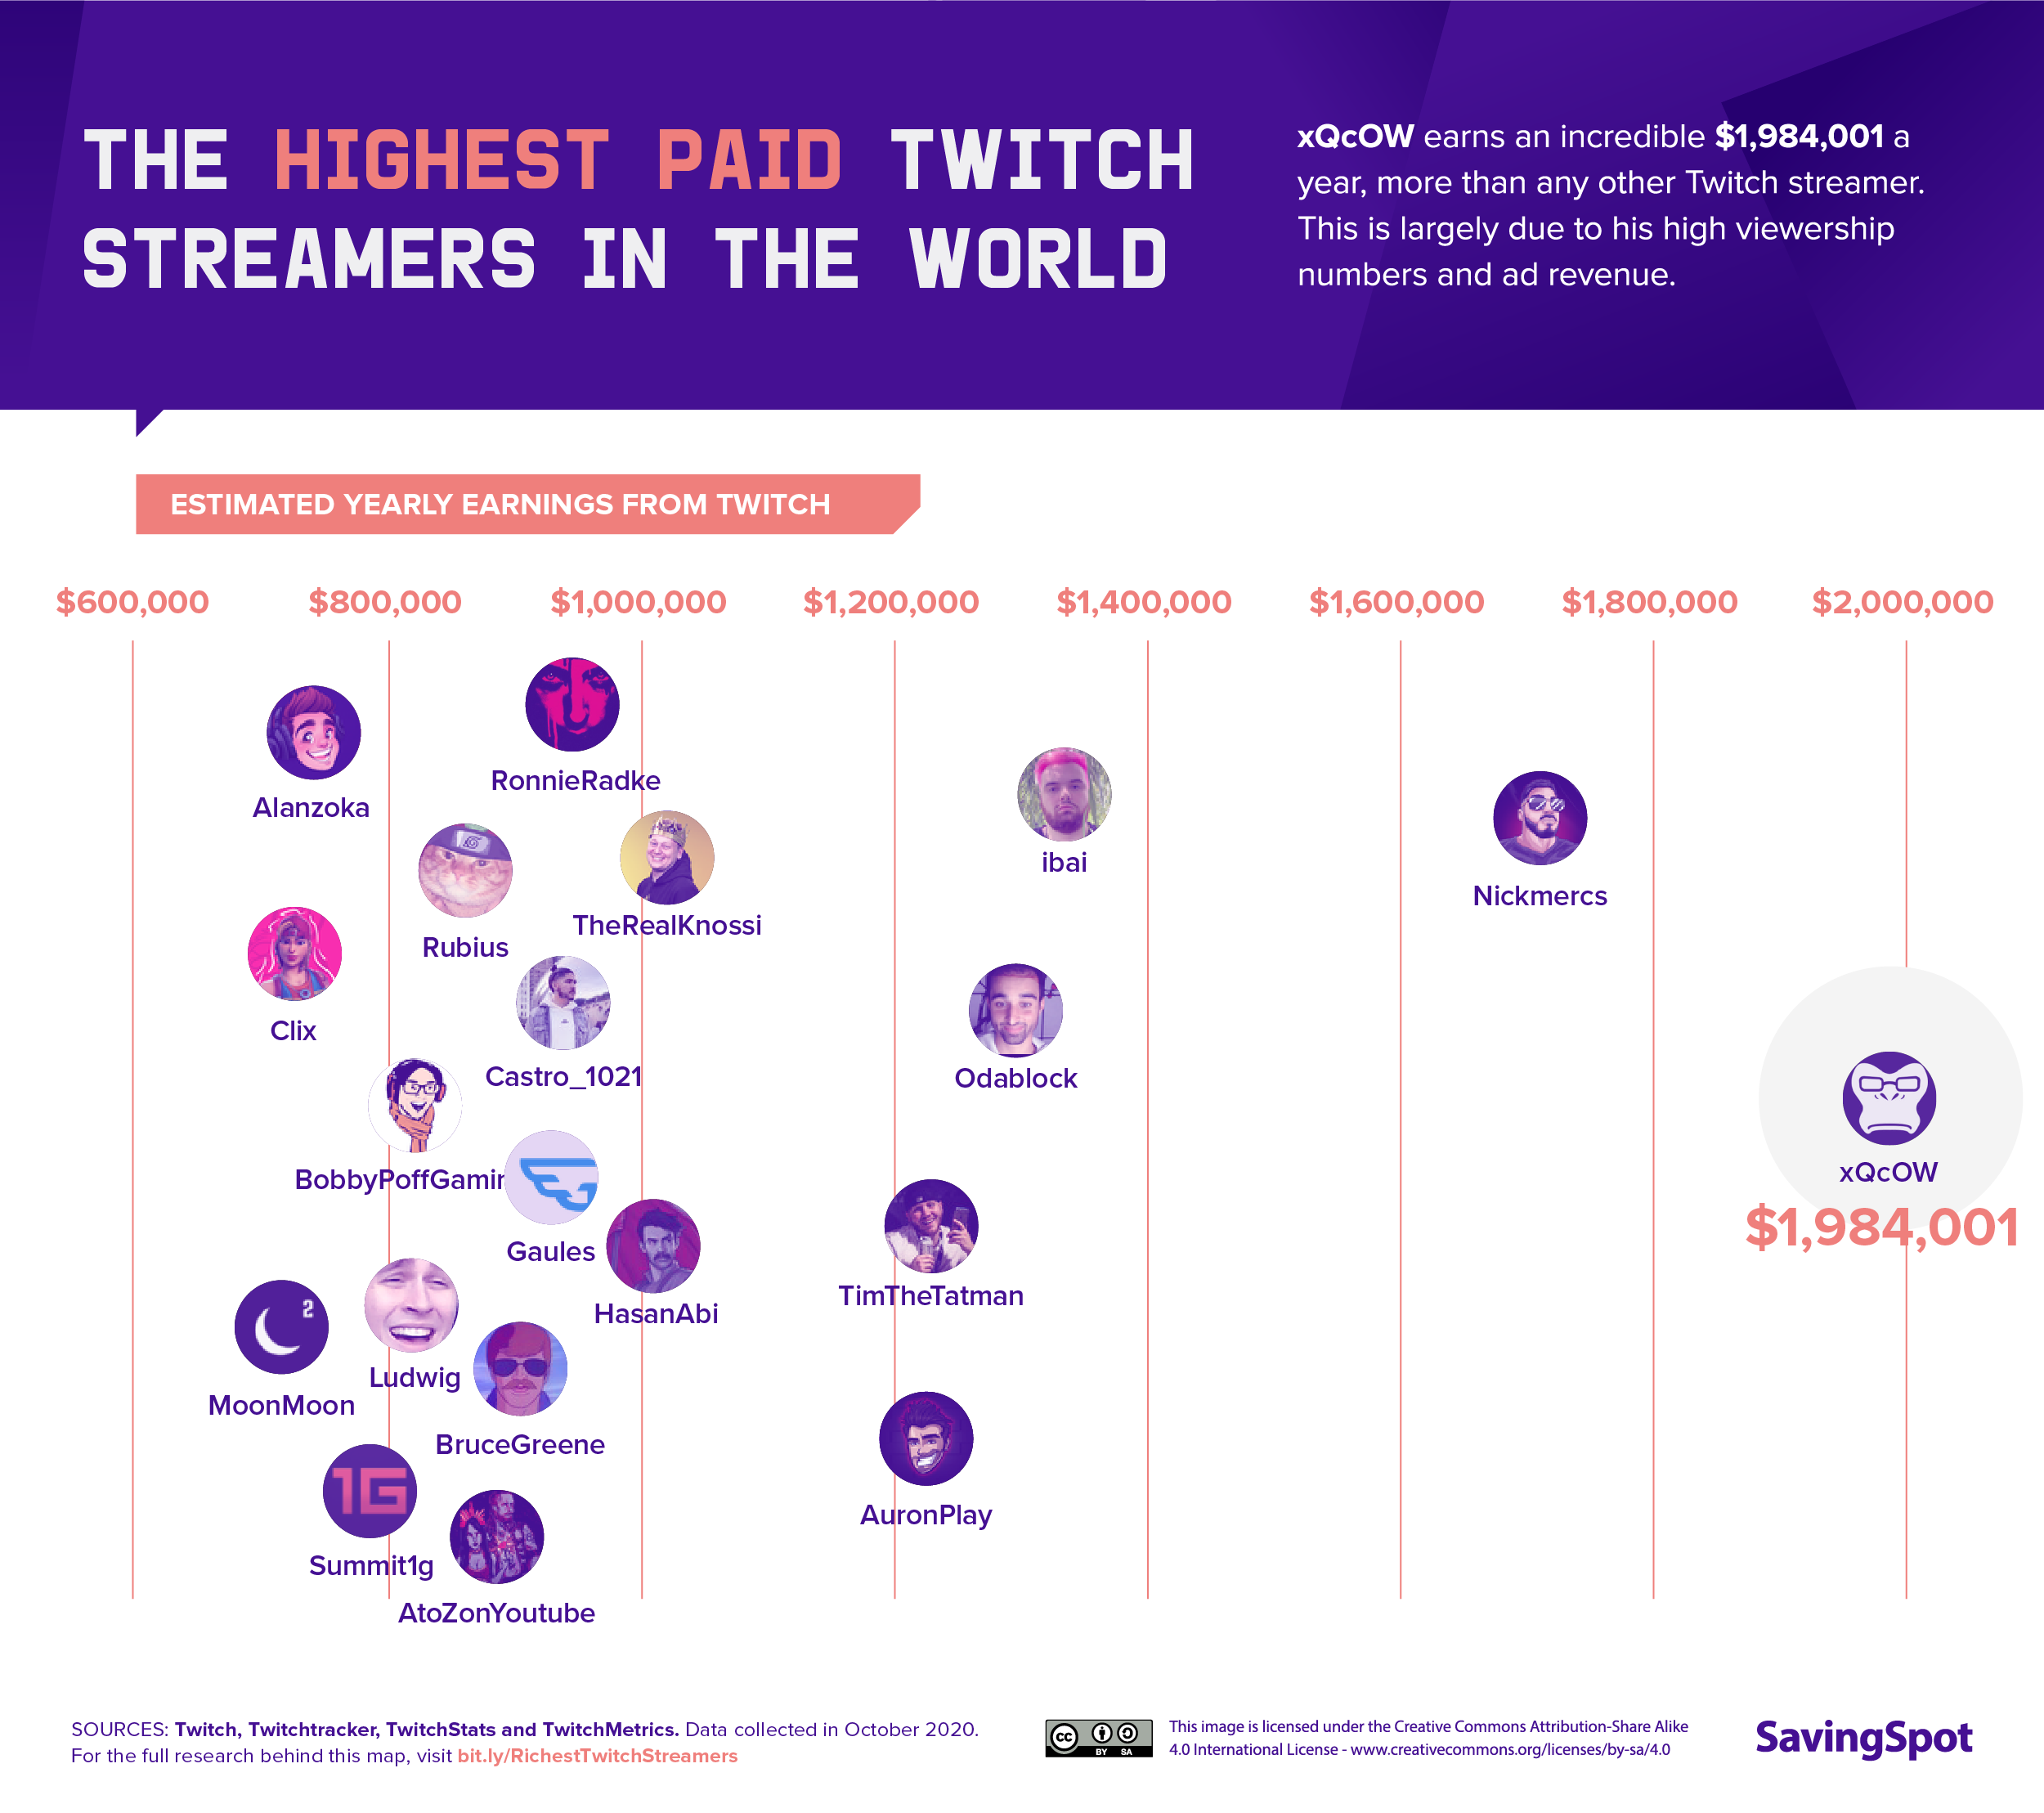 Highest-Paid Twitch Streamers in the World